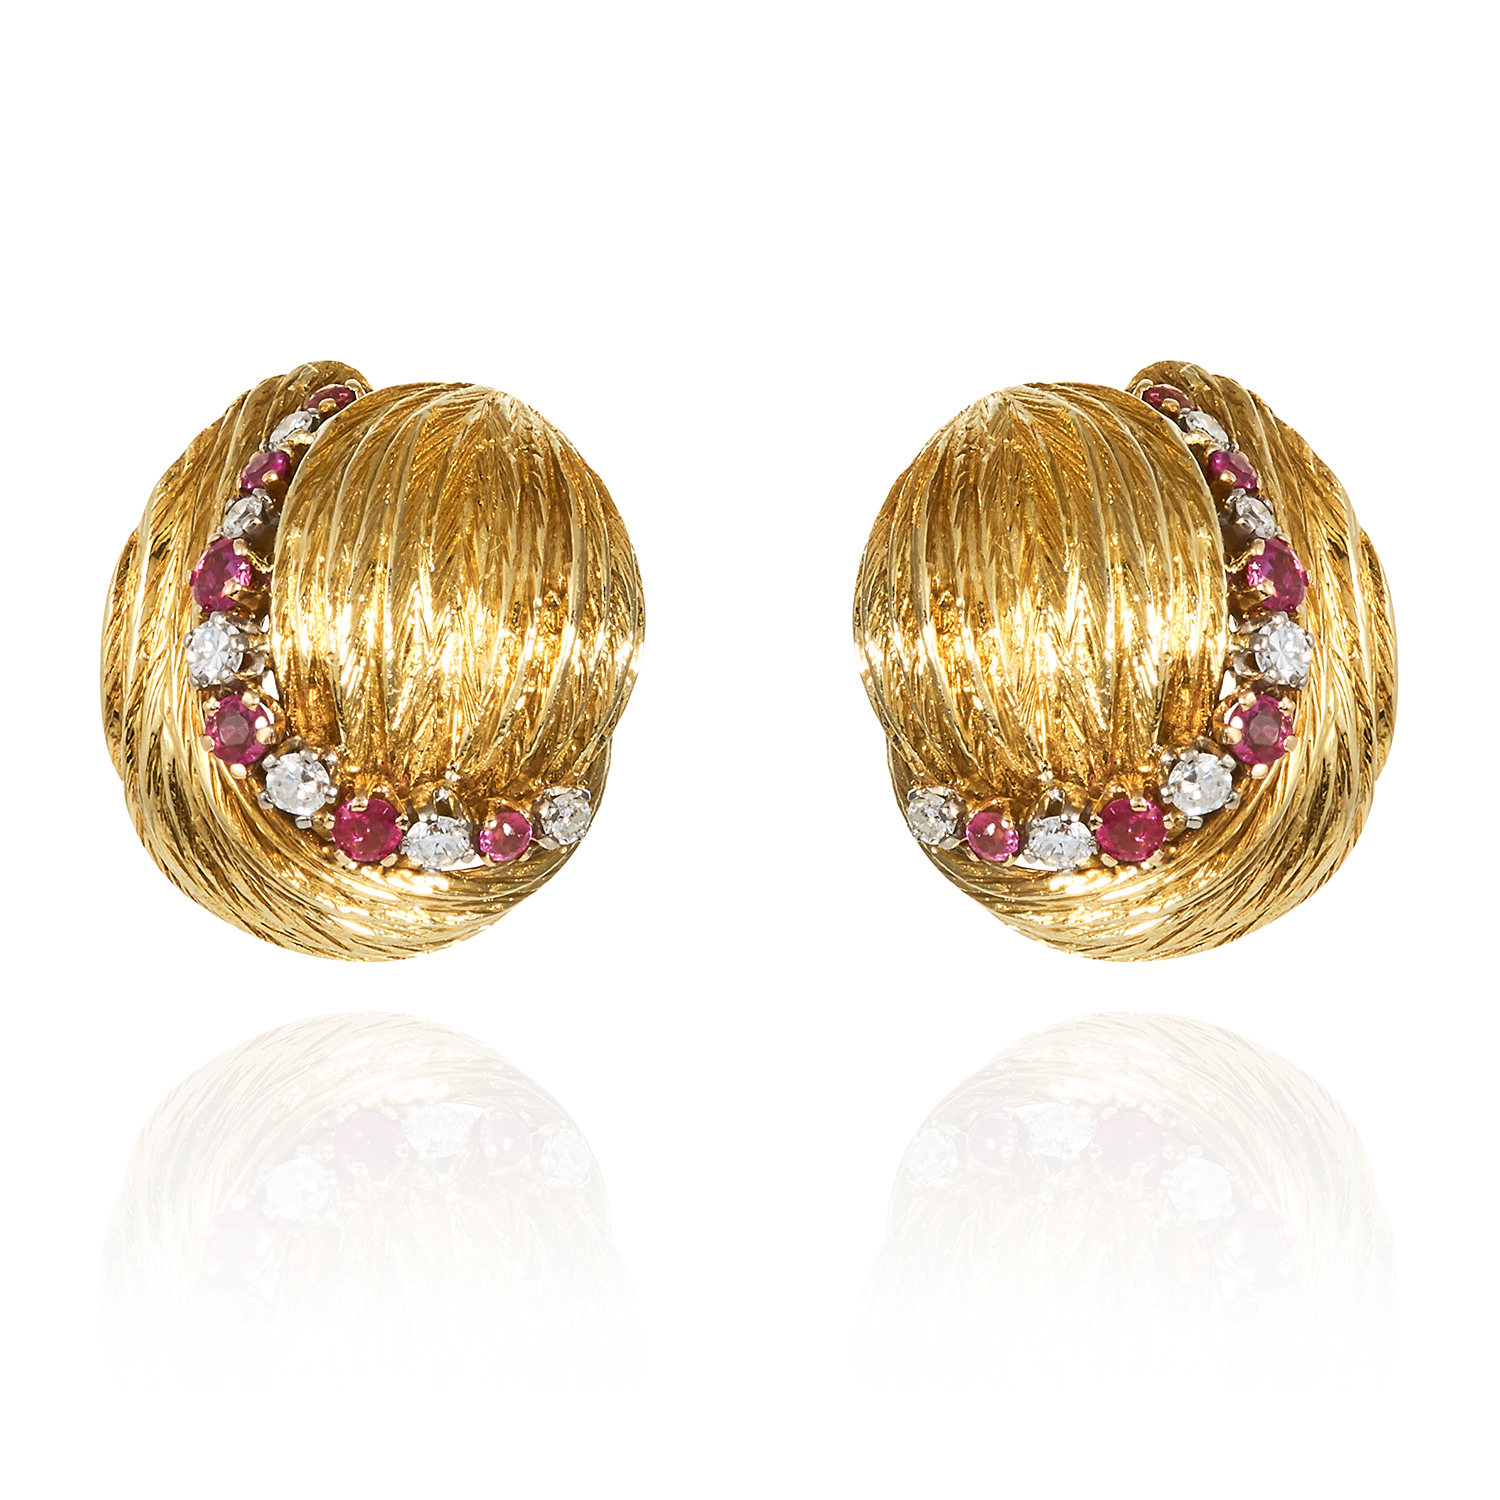 A PAIR OF VINTAGE RUBY AND DIAMOND EARRINGS in 18ct yellow gold, jewelled with alternating round cut